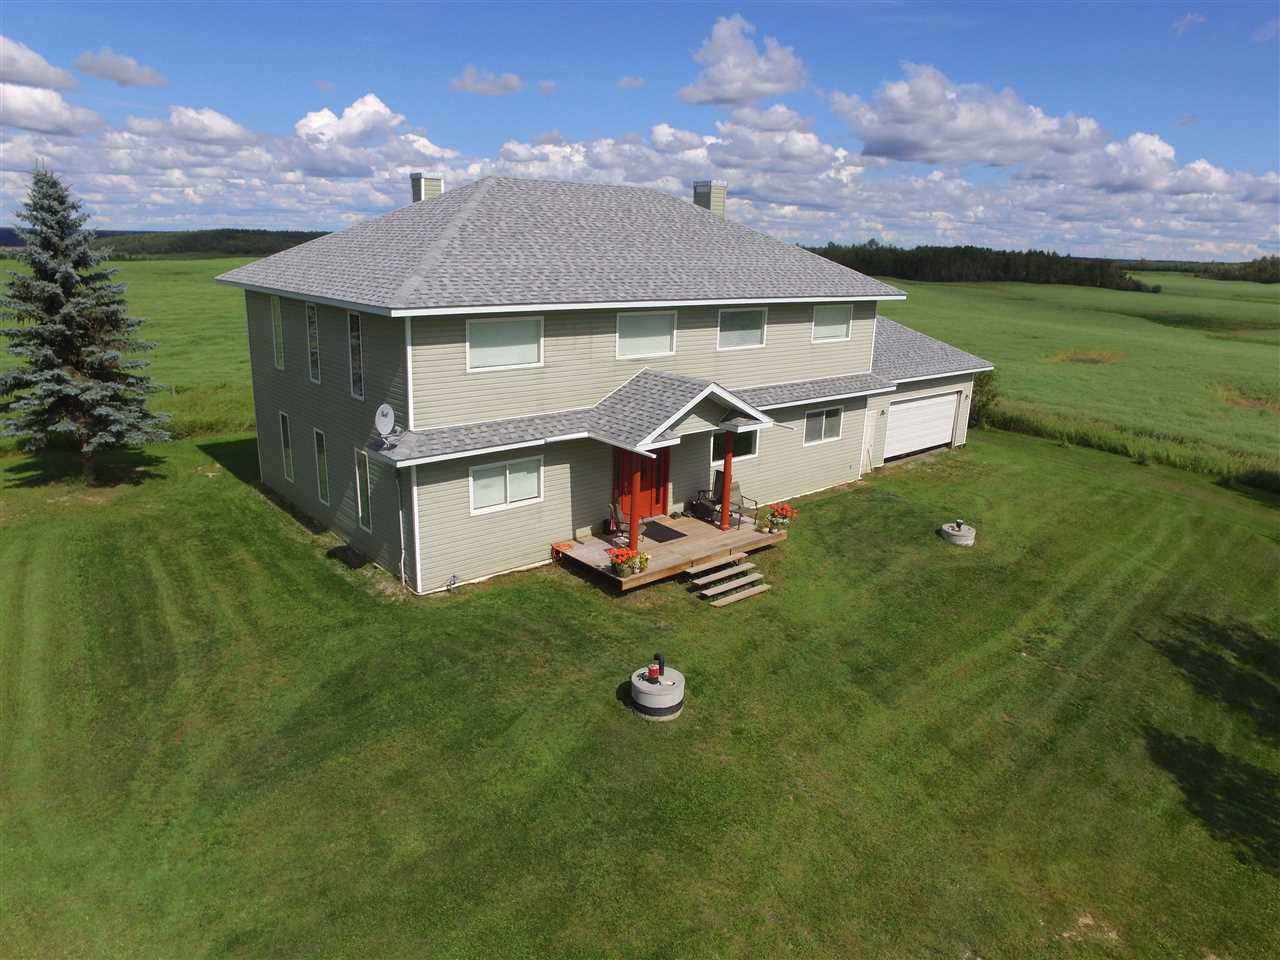 Main Photo: 57203 Rge. Rd. 44: Rural Lac Ste. Anne County House for sale : MLS®# E4208241